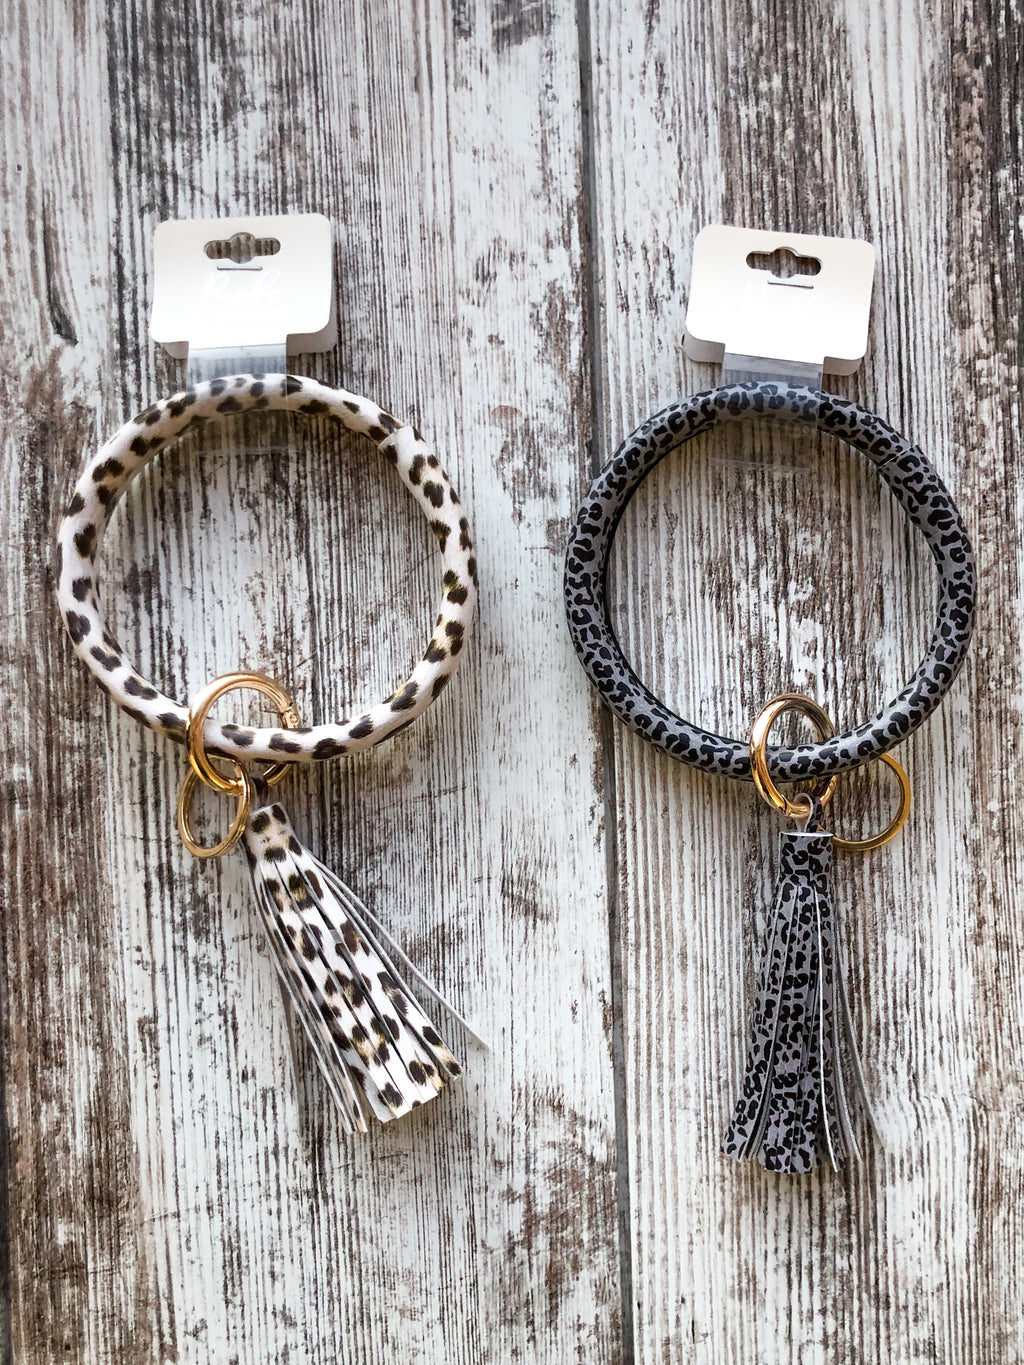 Leopard Key Rings